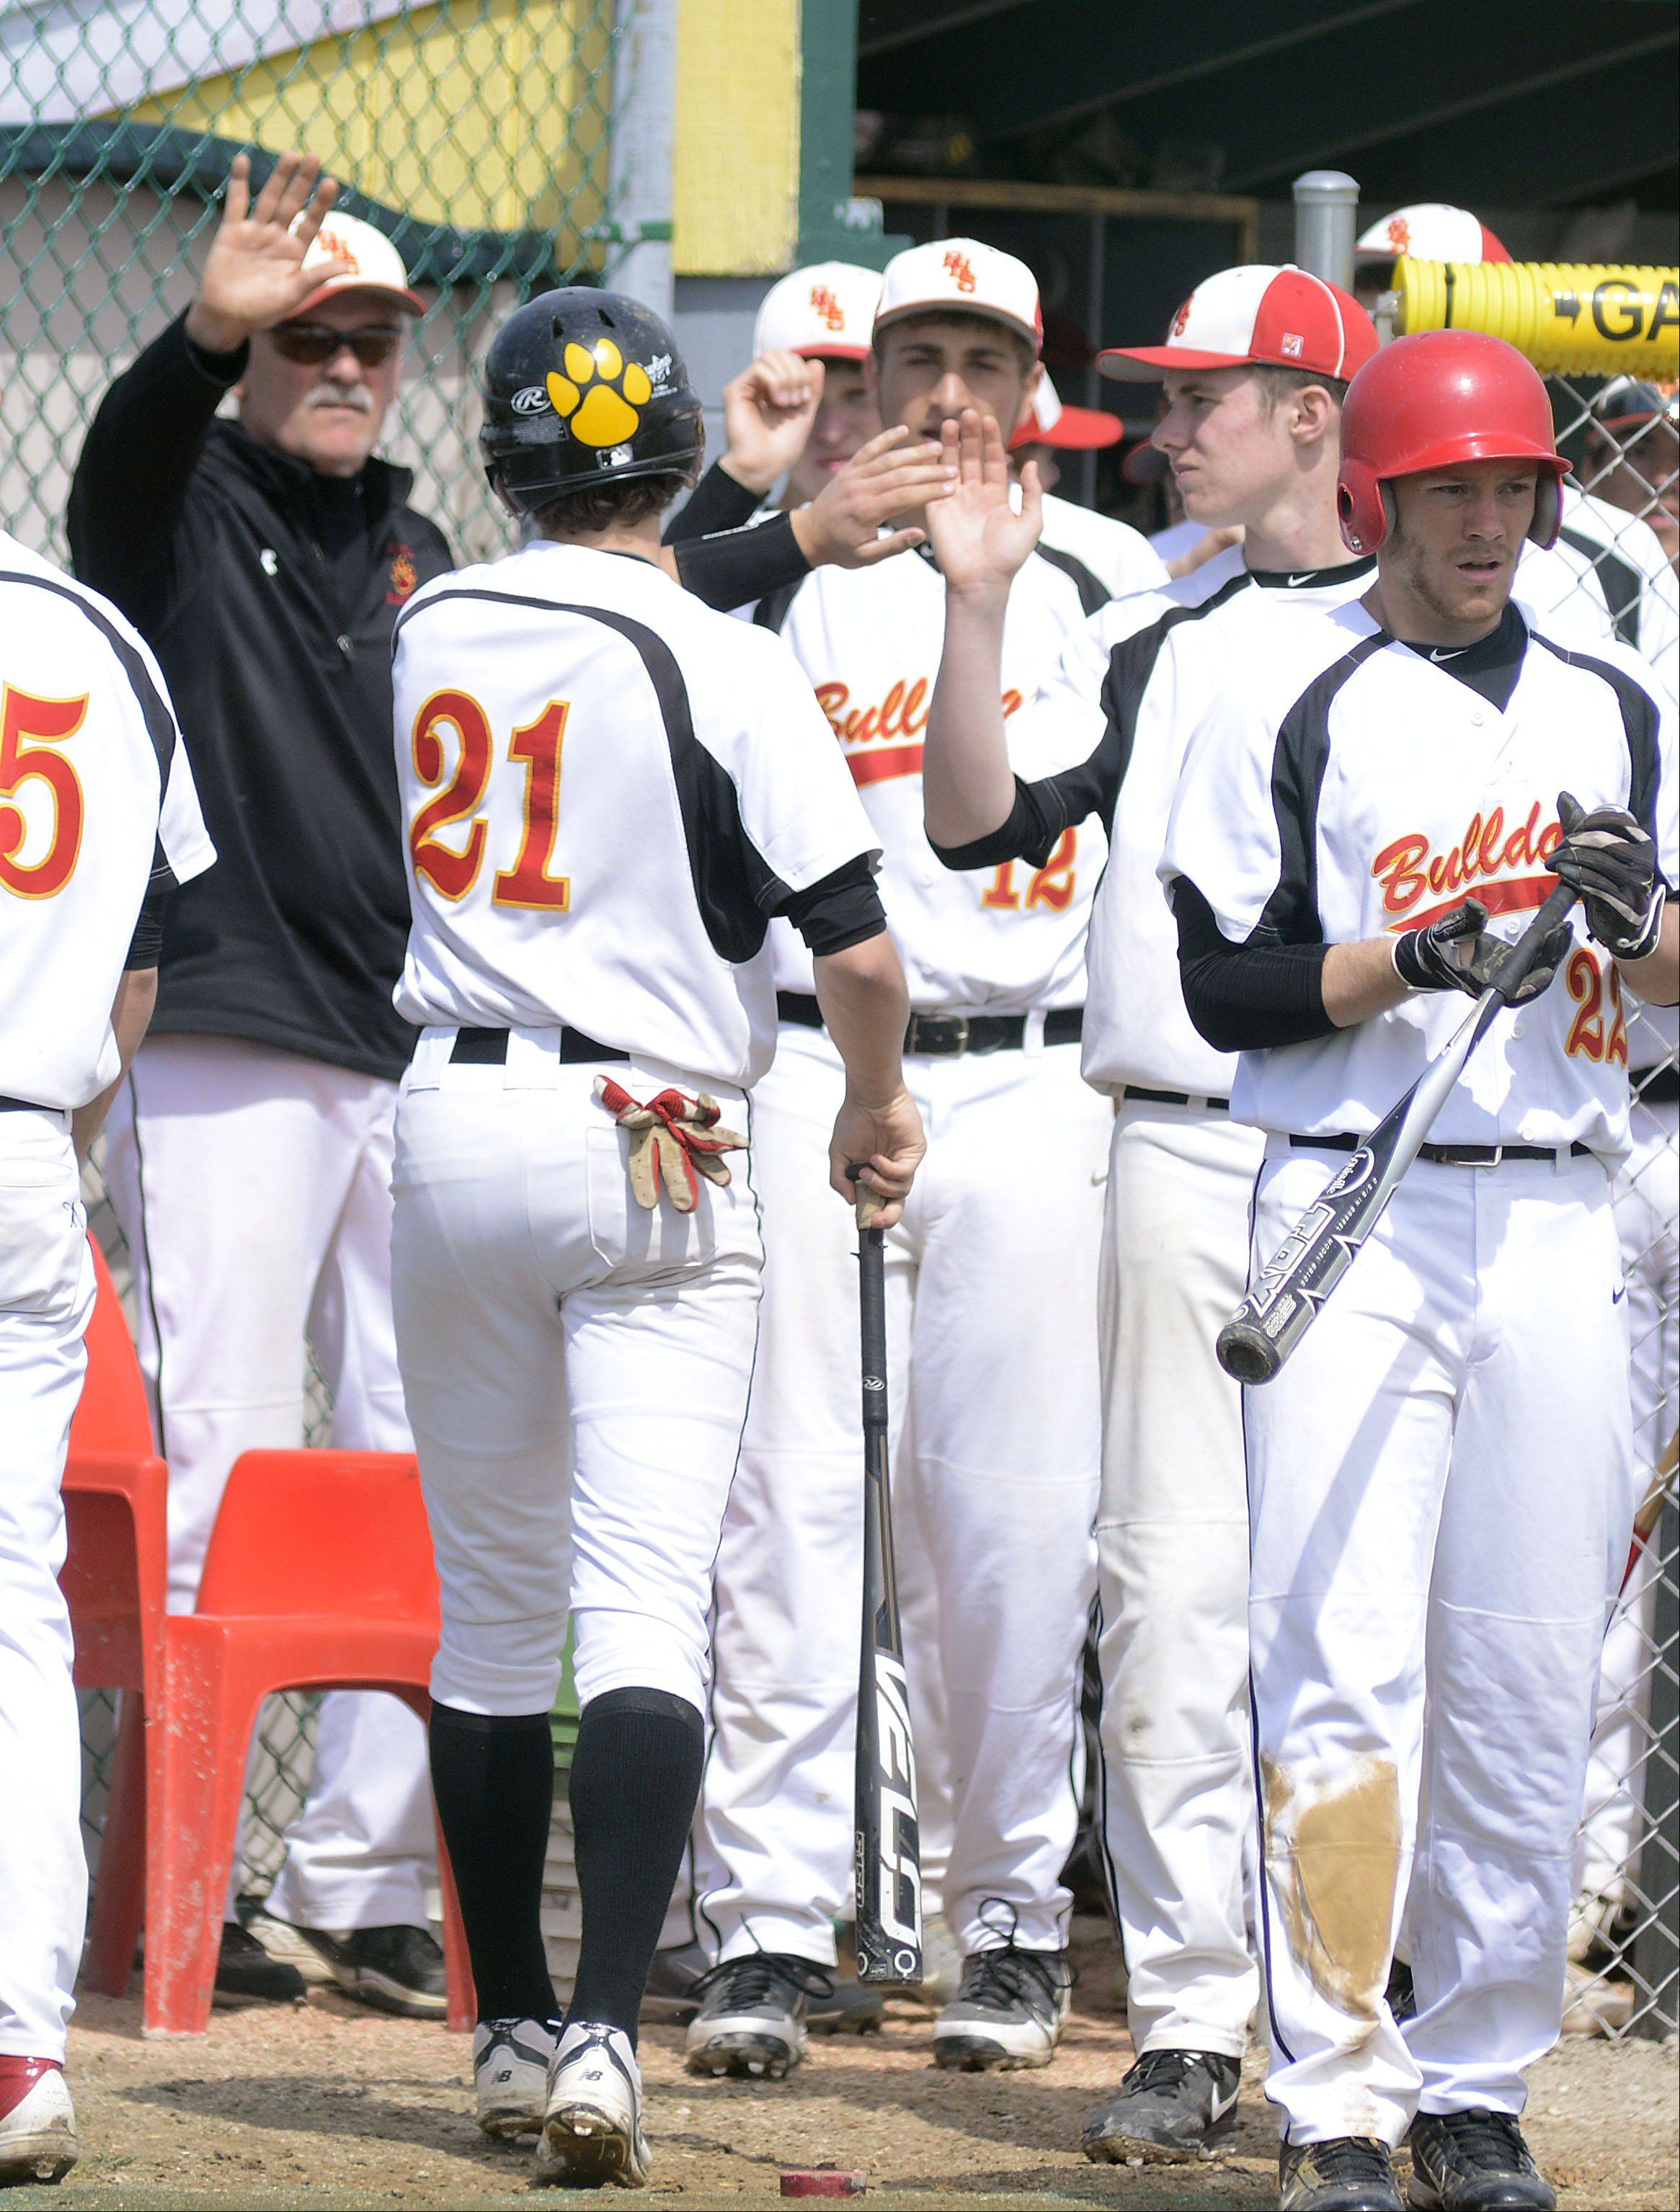 Batavia's Jeremy Schoessling gets high fives as he comes back to the dugout after scoring a run in the in the fourth inning on Saturday, May 4.